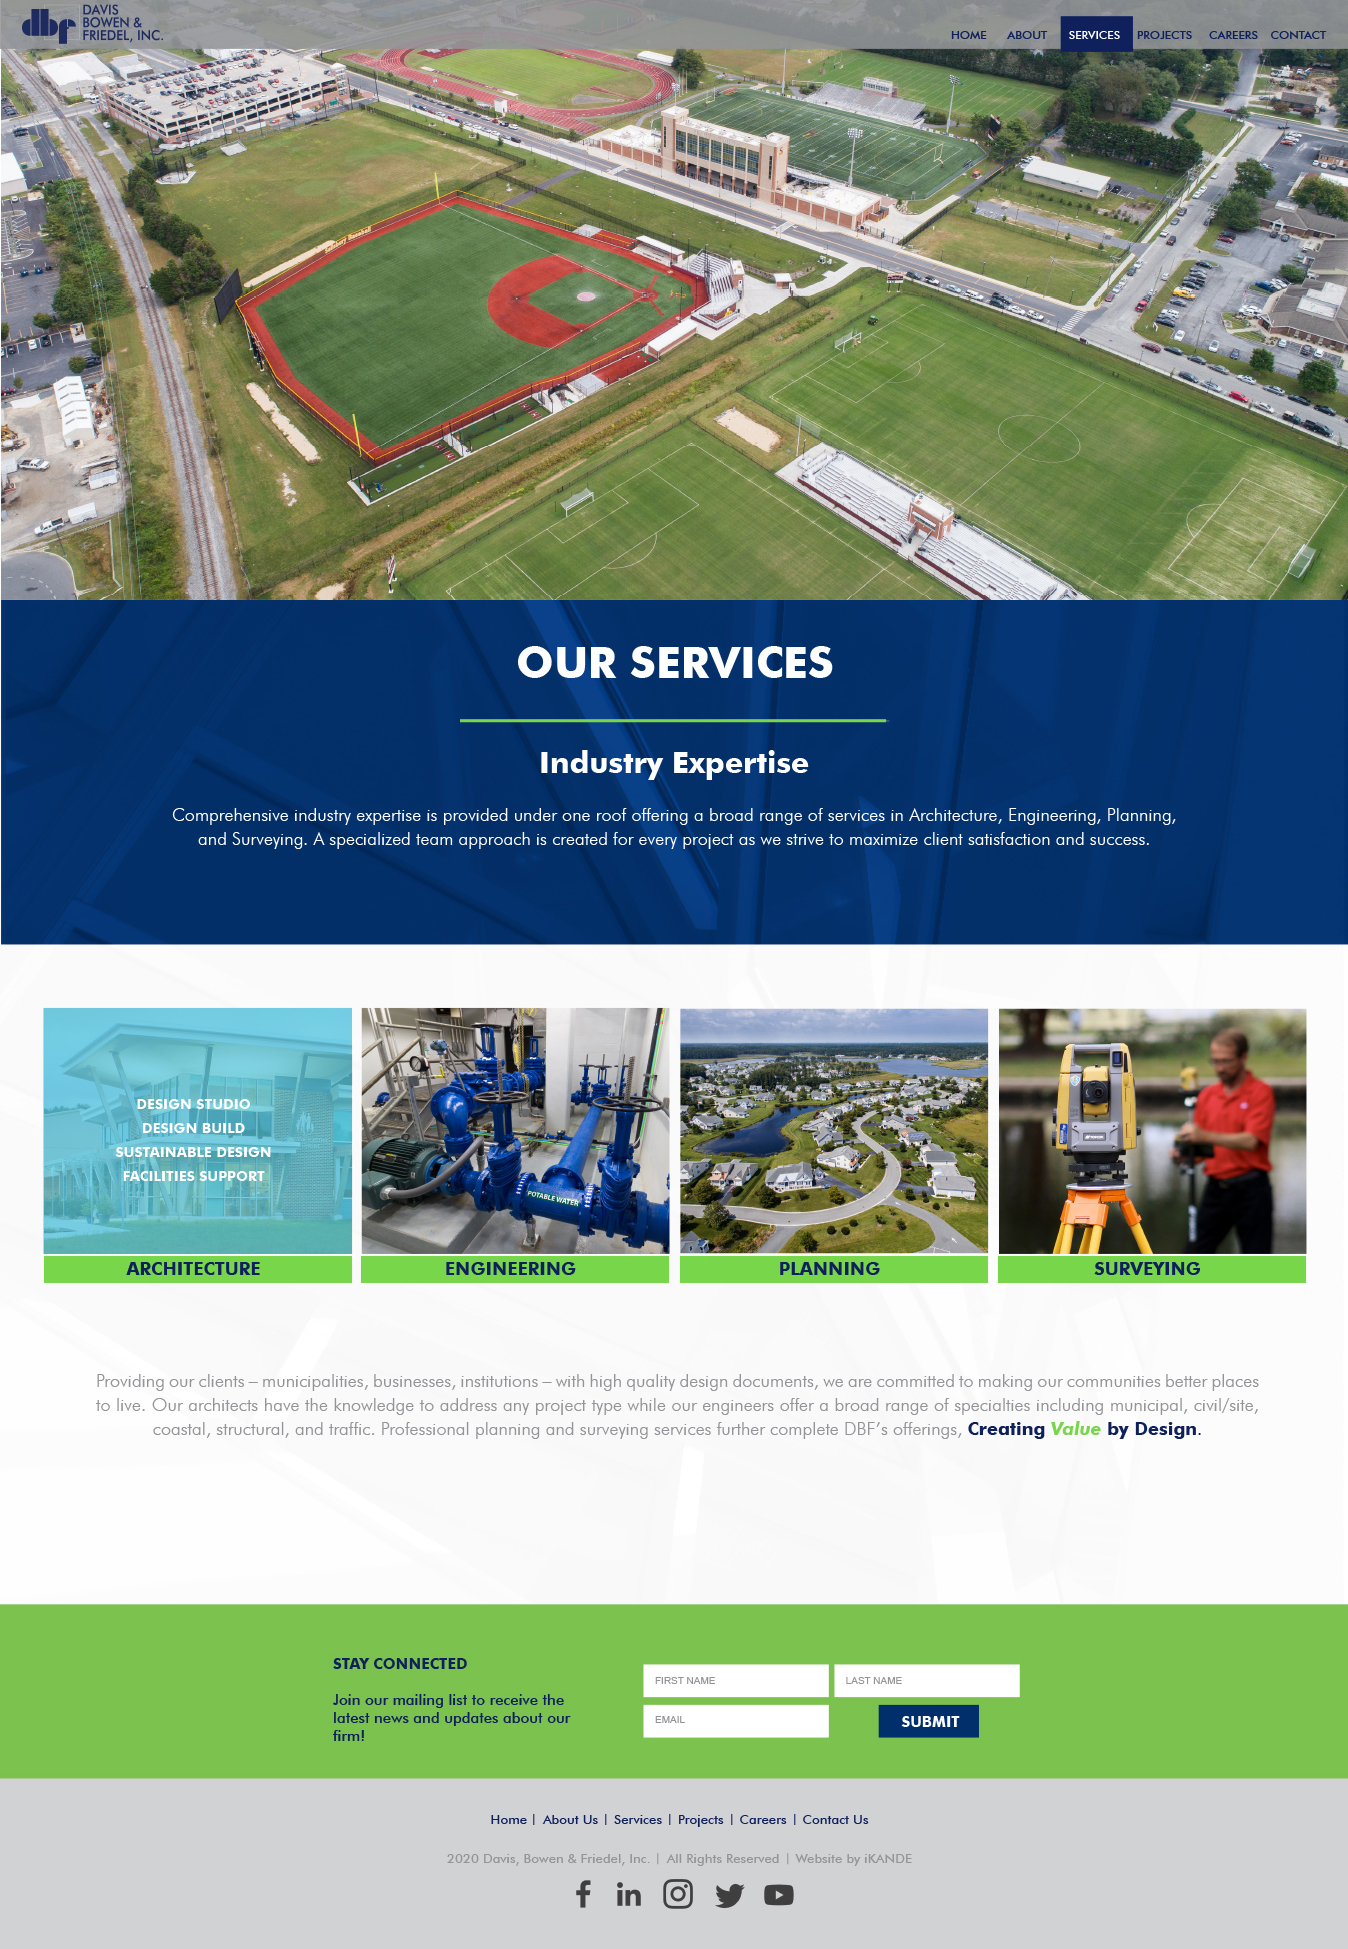 DBF inc services page and web design by iKANDE